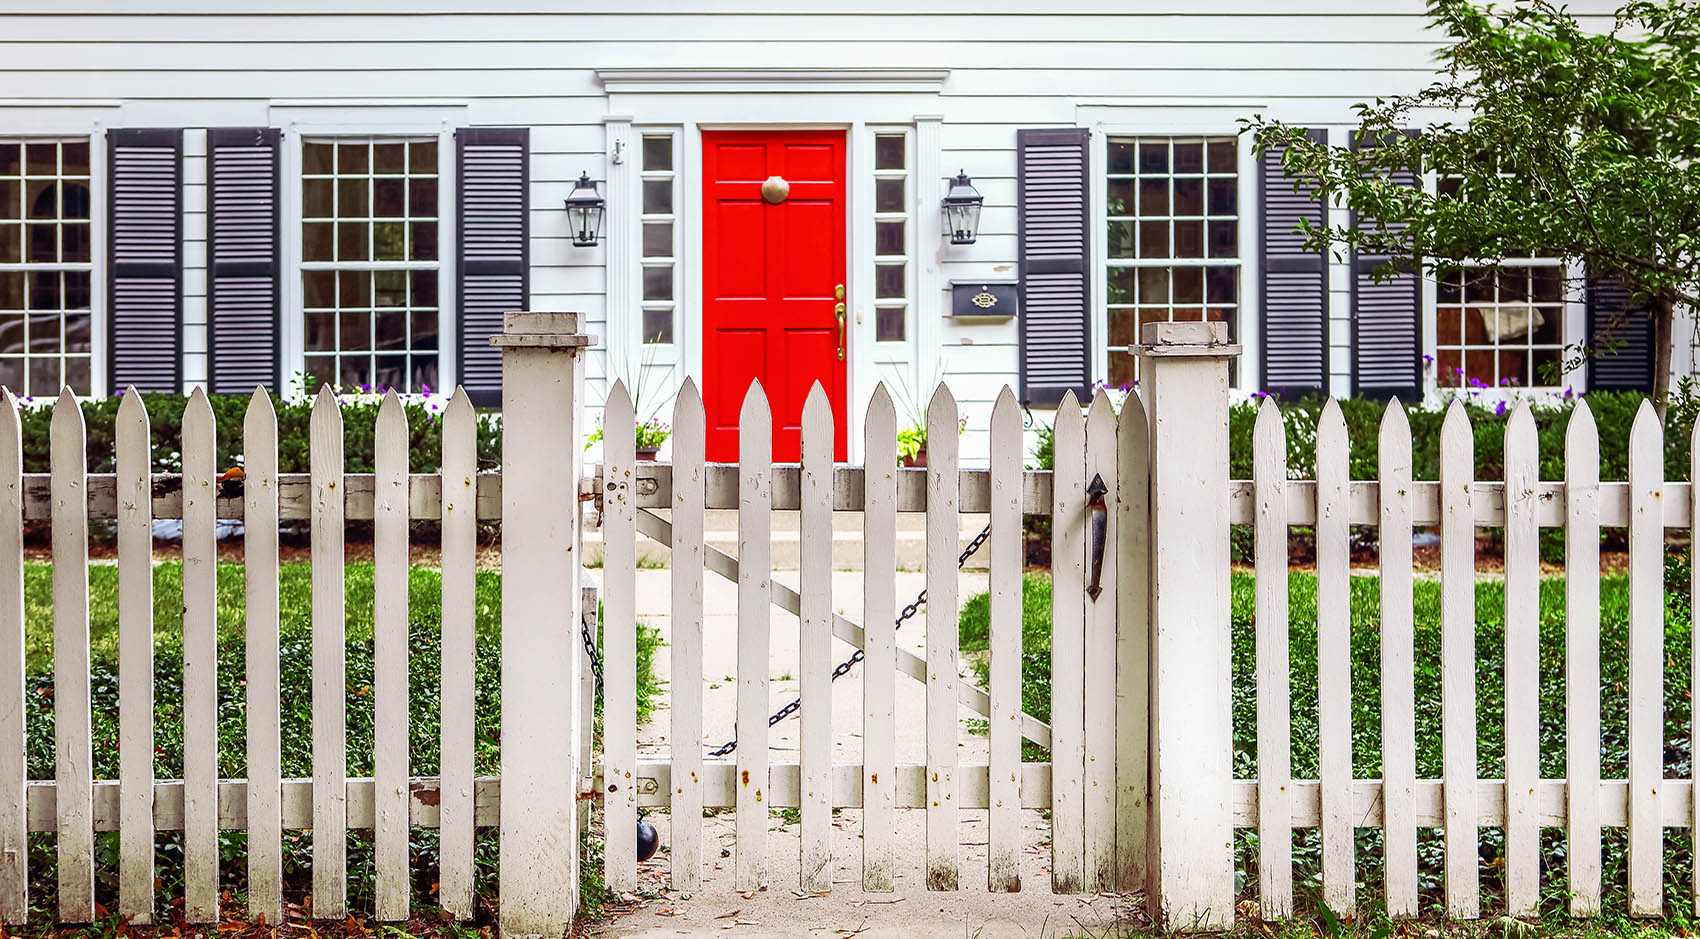 White picket fence around home with red door